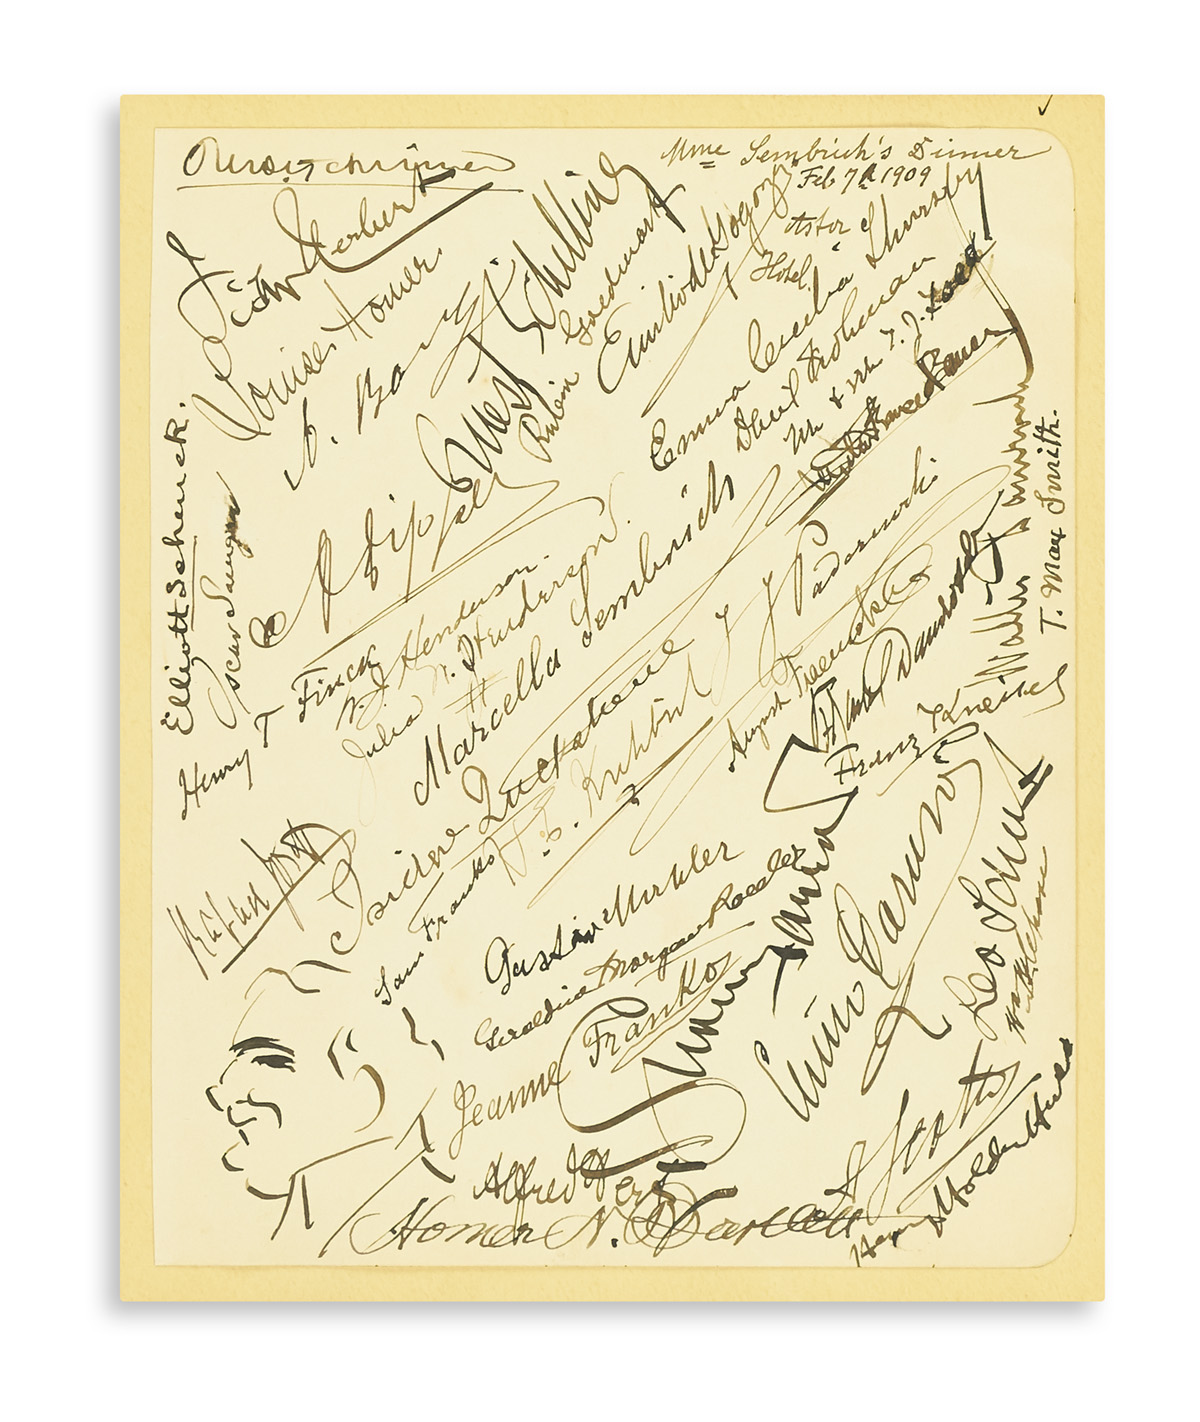 (MUSICIANS.) SEMBRICH, MARCELLA. Over 40 Signatures by musicians and others gathered to celebrate Sembrichs retirement